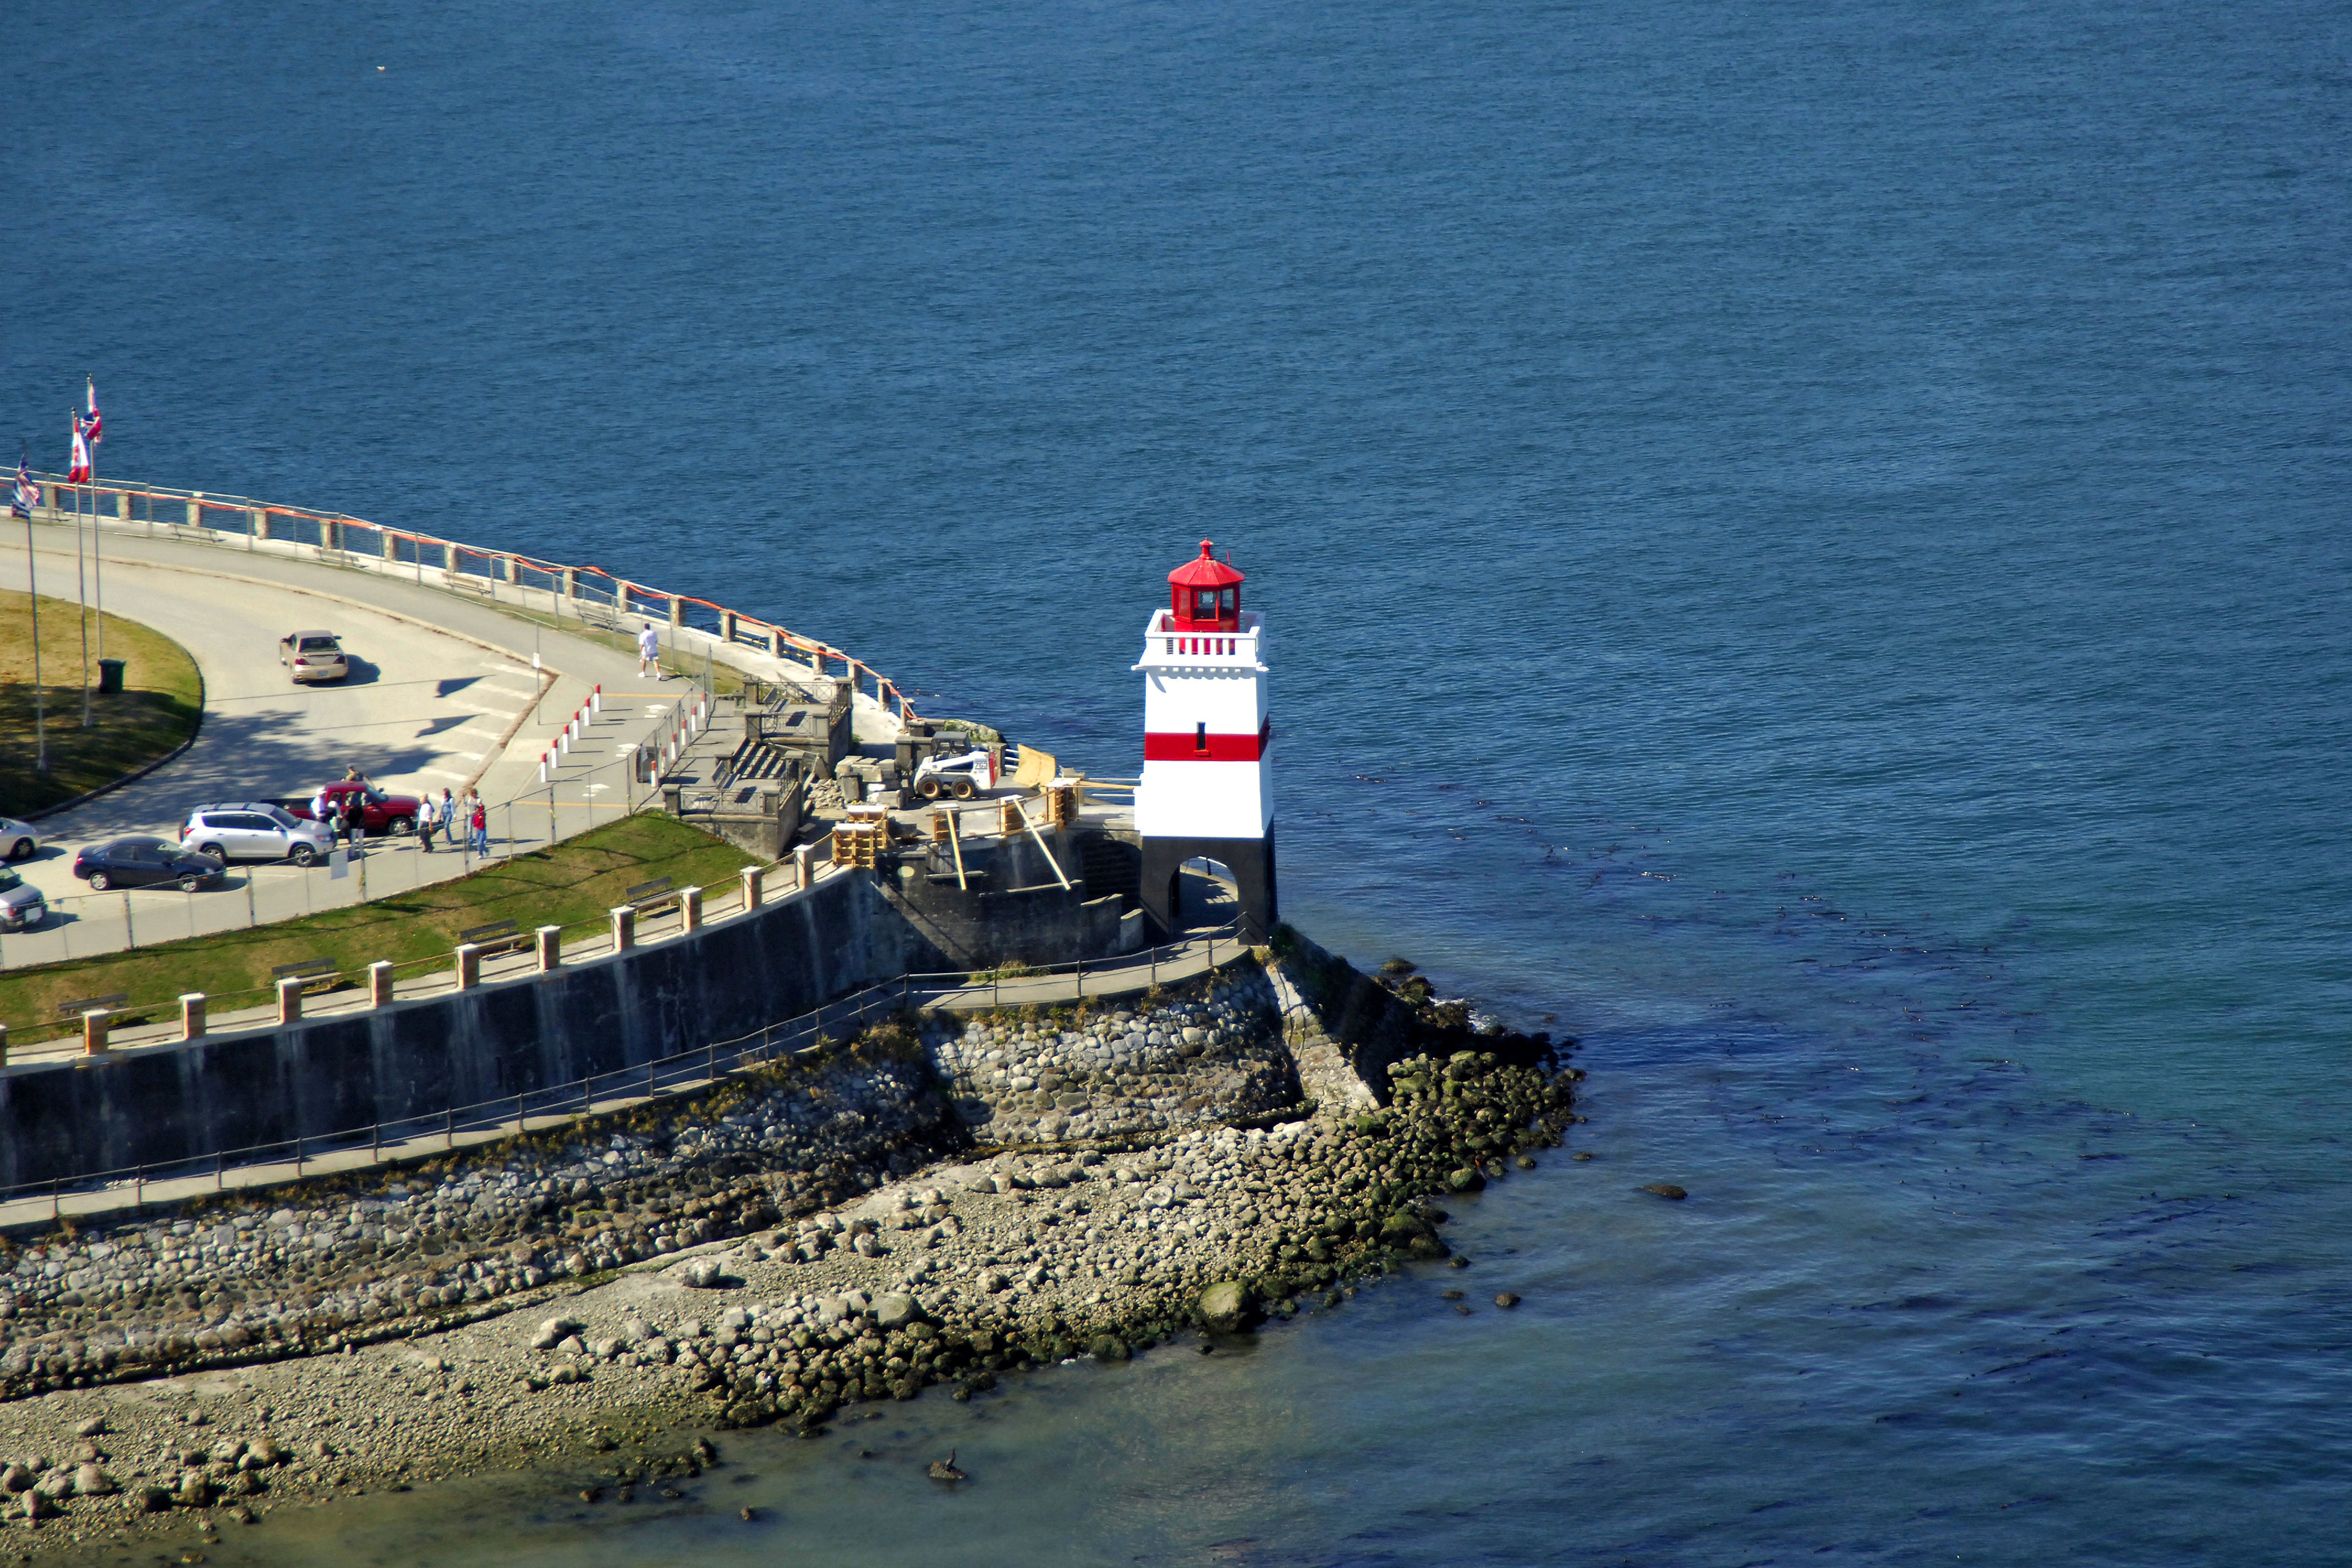 Brockton Point Lighthouse in Vancouver, BC, Canada - lighthouse Reviews - Phone Number - Marinas.com